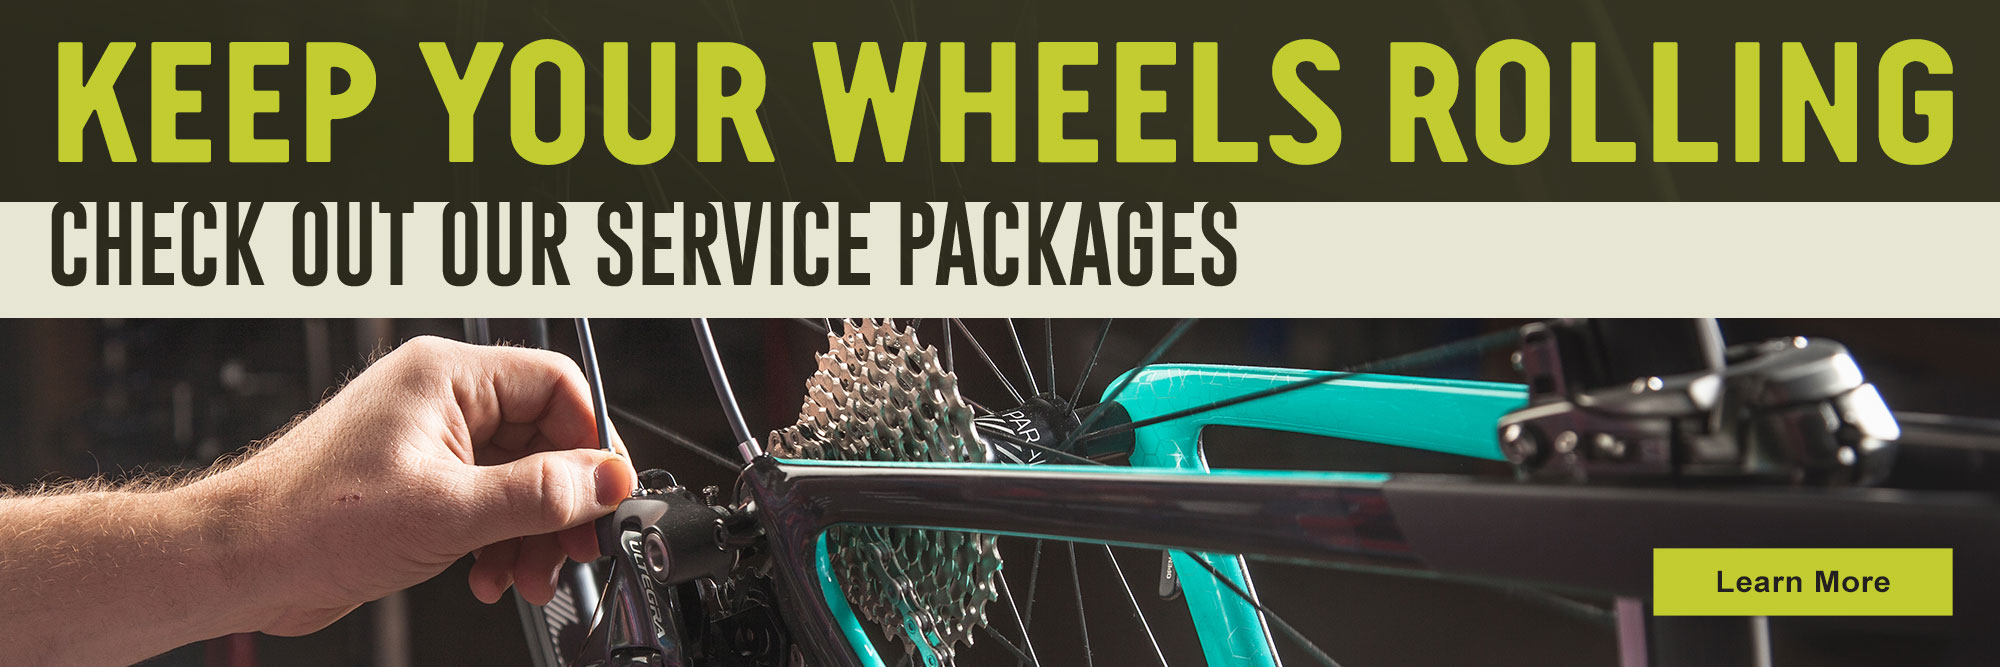 We service all types of bikes